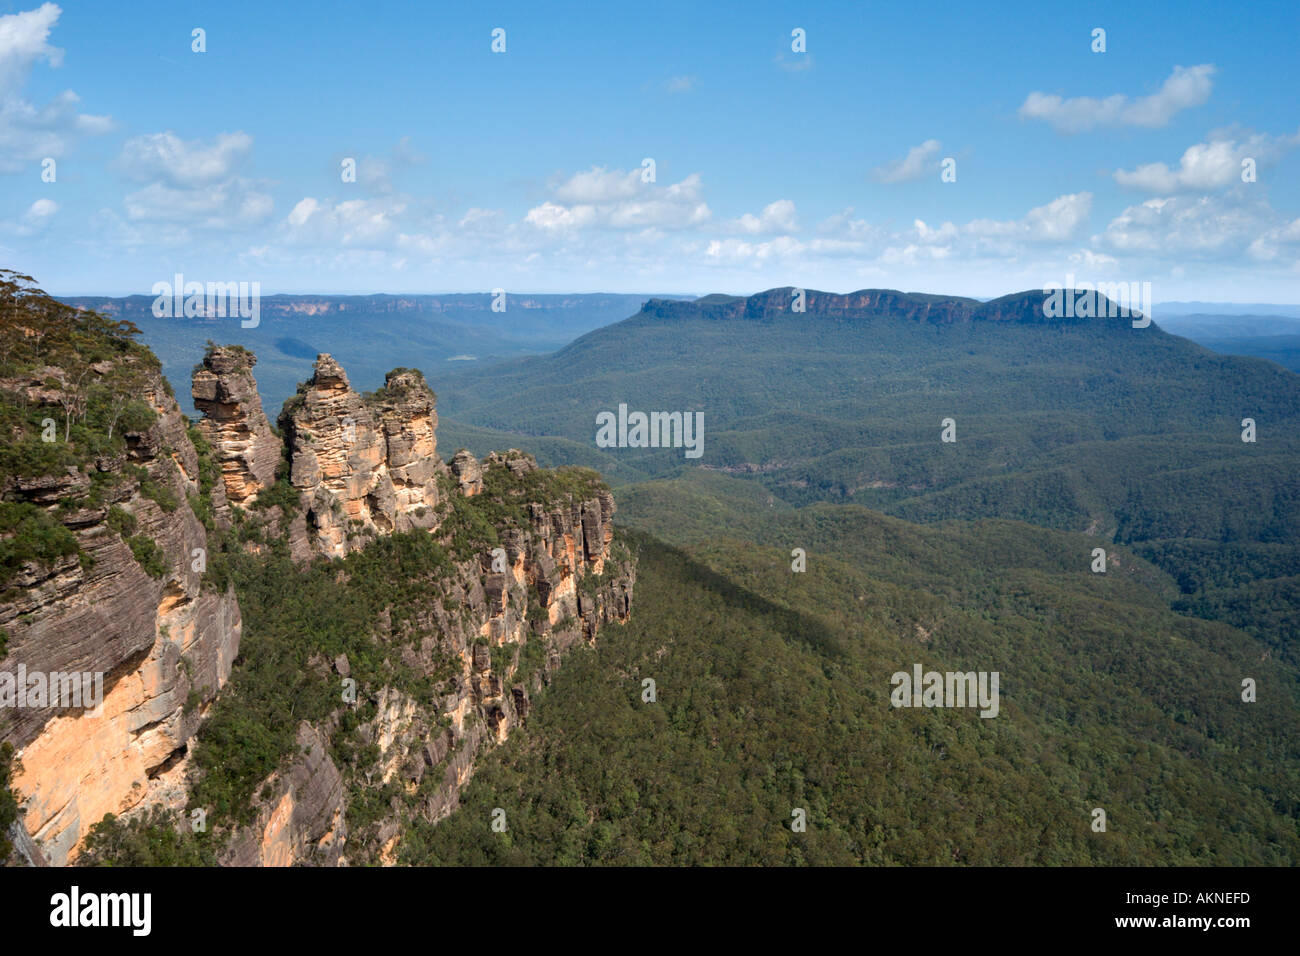 The Three Sisters and Mount Gibraltar from Echo Point, Blue Mountains, New South Wales, Australia - Stock Image